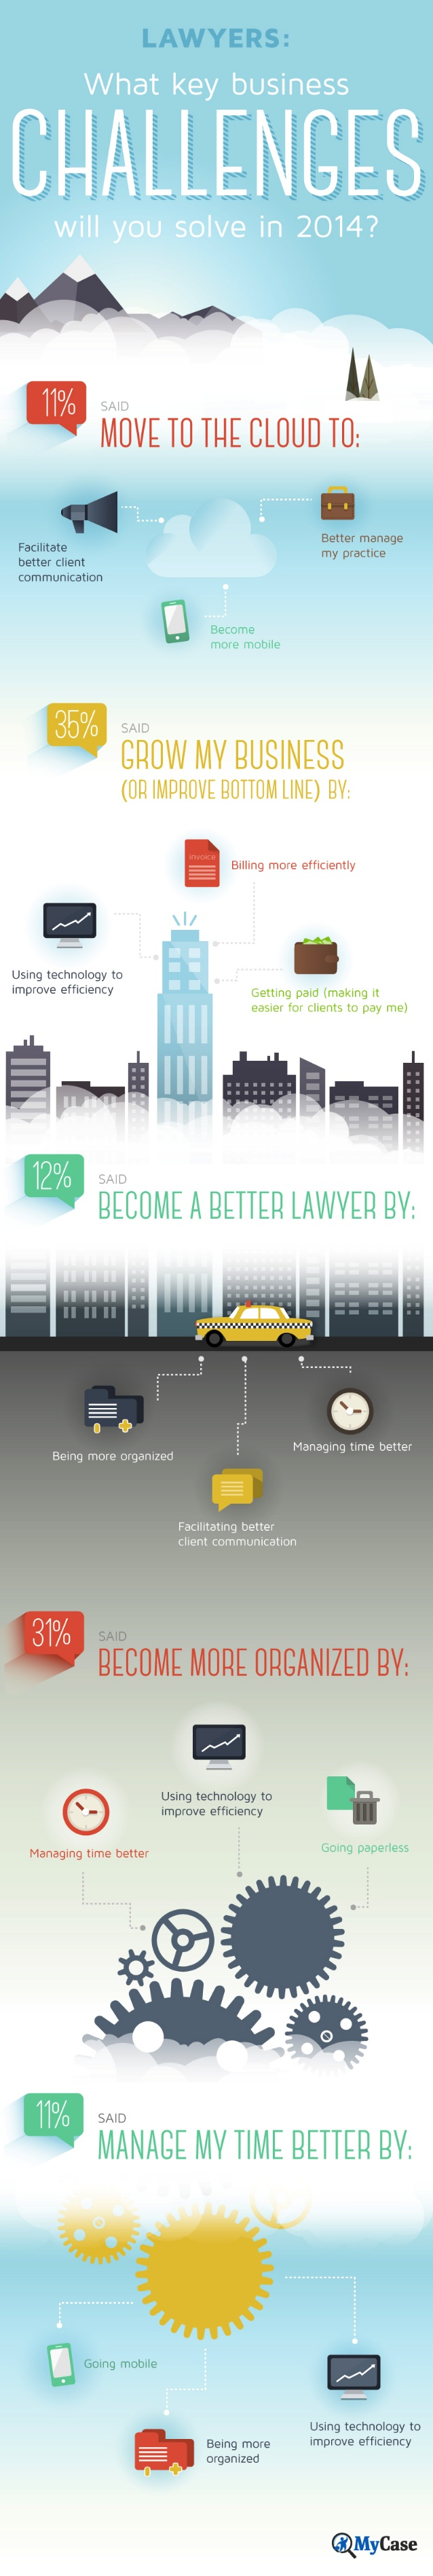 2014 Key Business Challenges For Lawyers